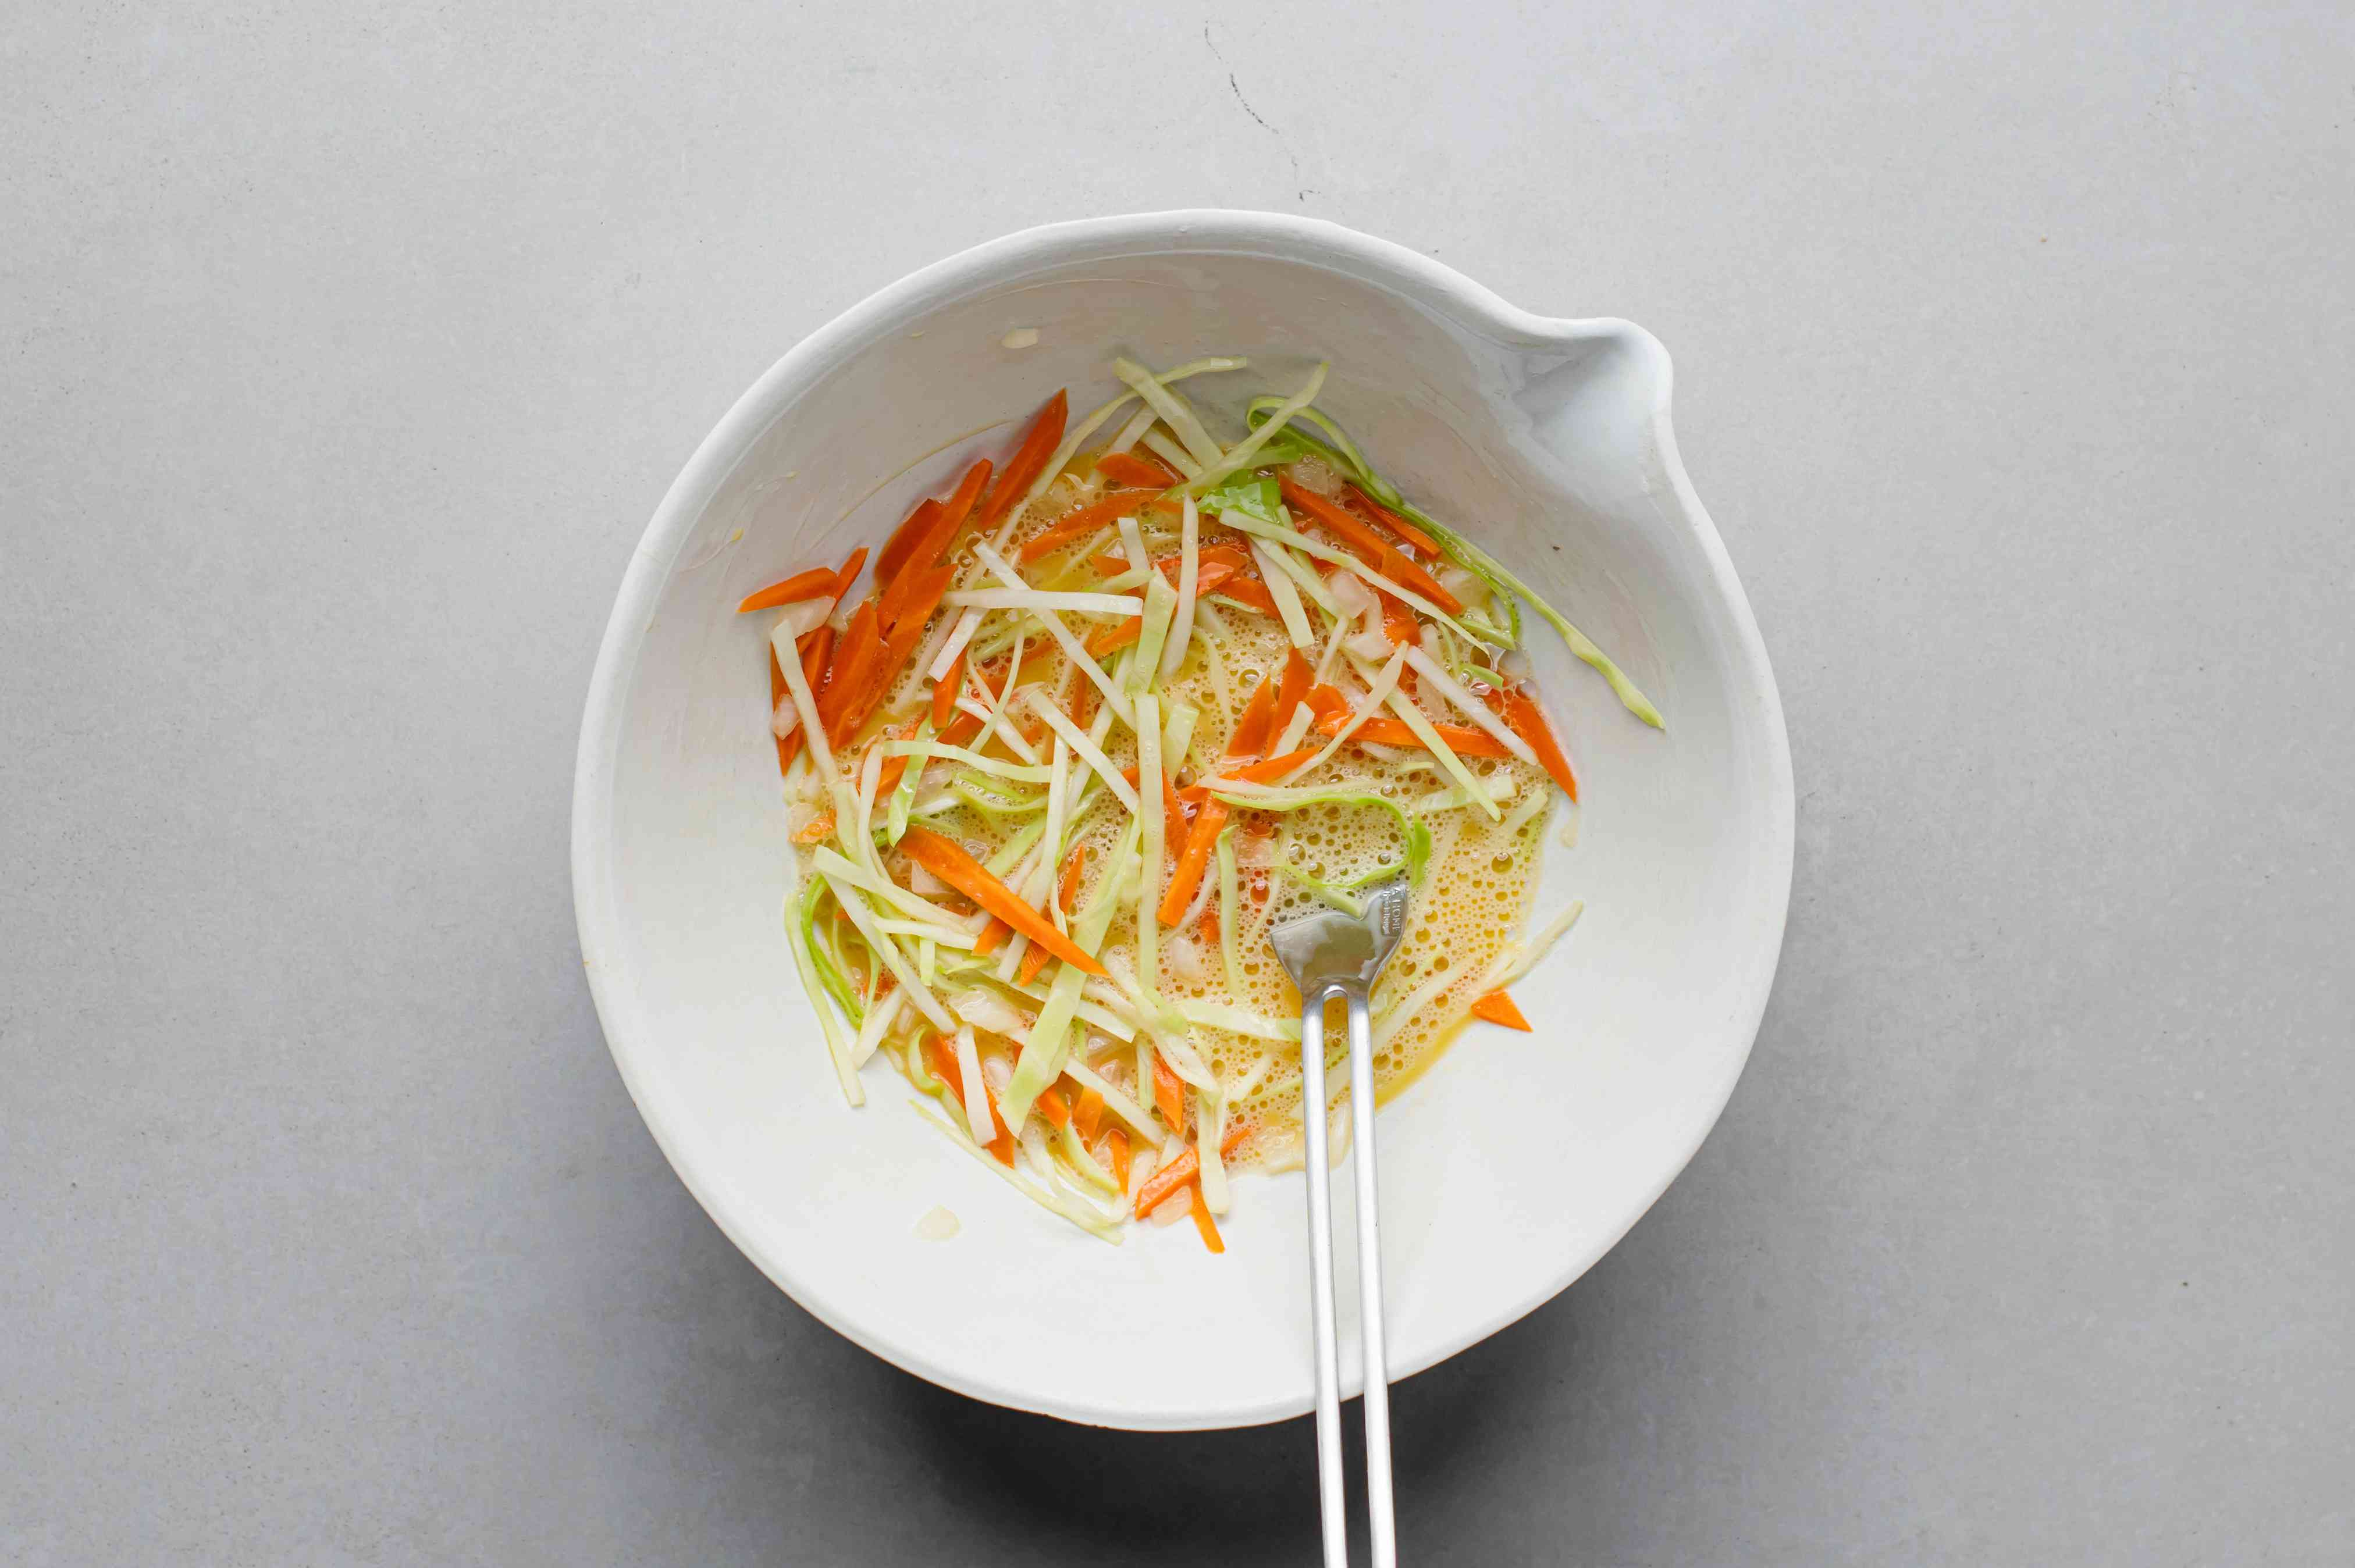 eggs with carrots, cabbage and onions in a bowl